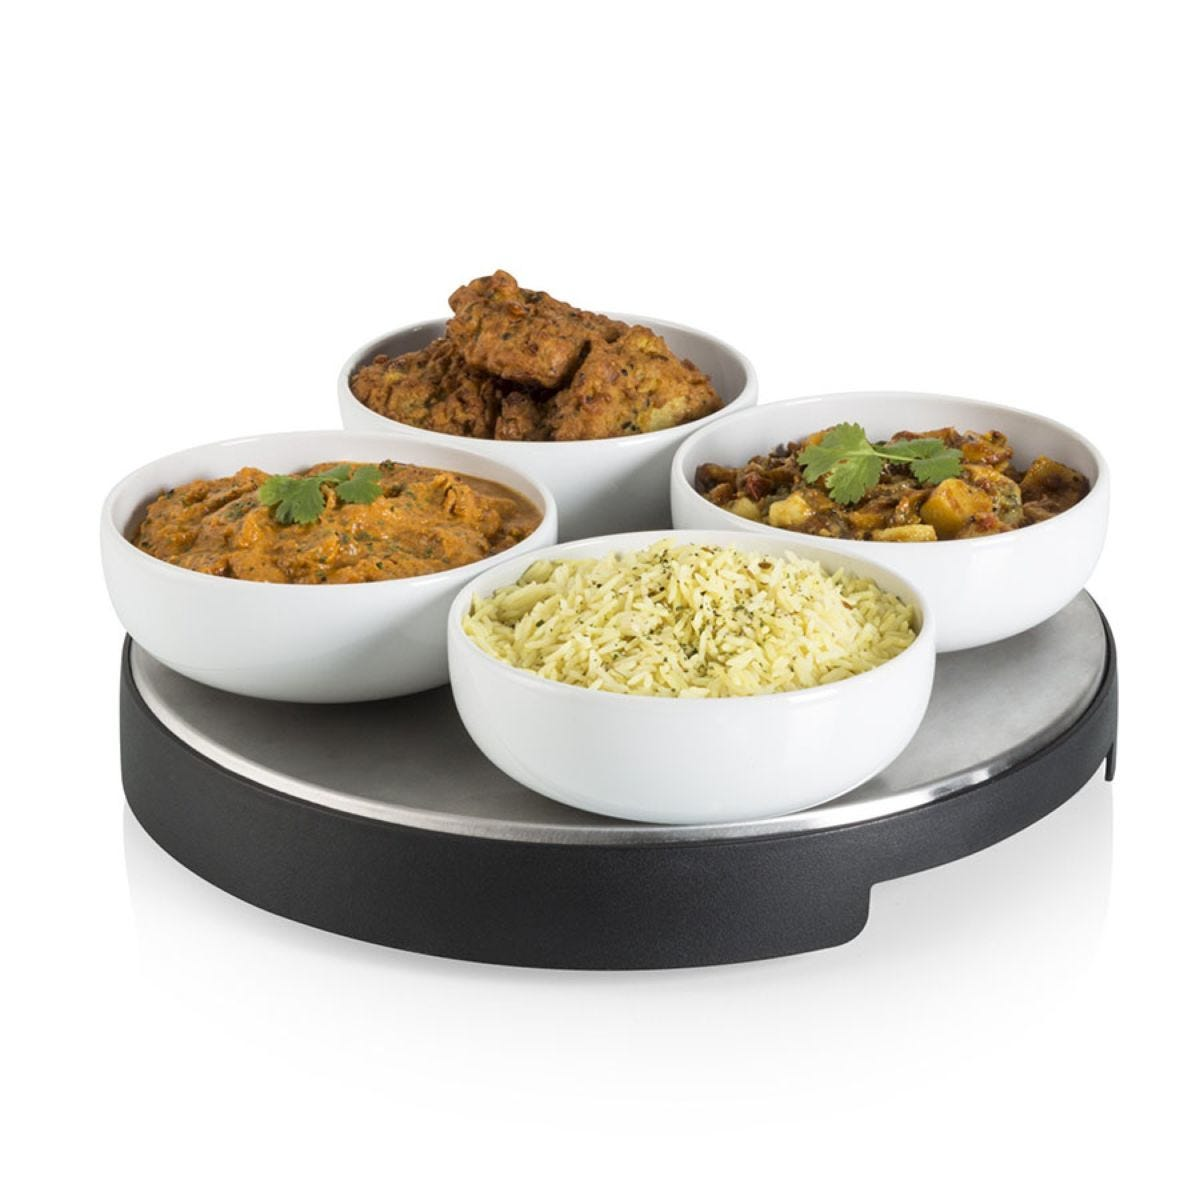 Swan SW13SS Cordless Heated Lazy Susan - Black